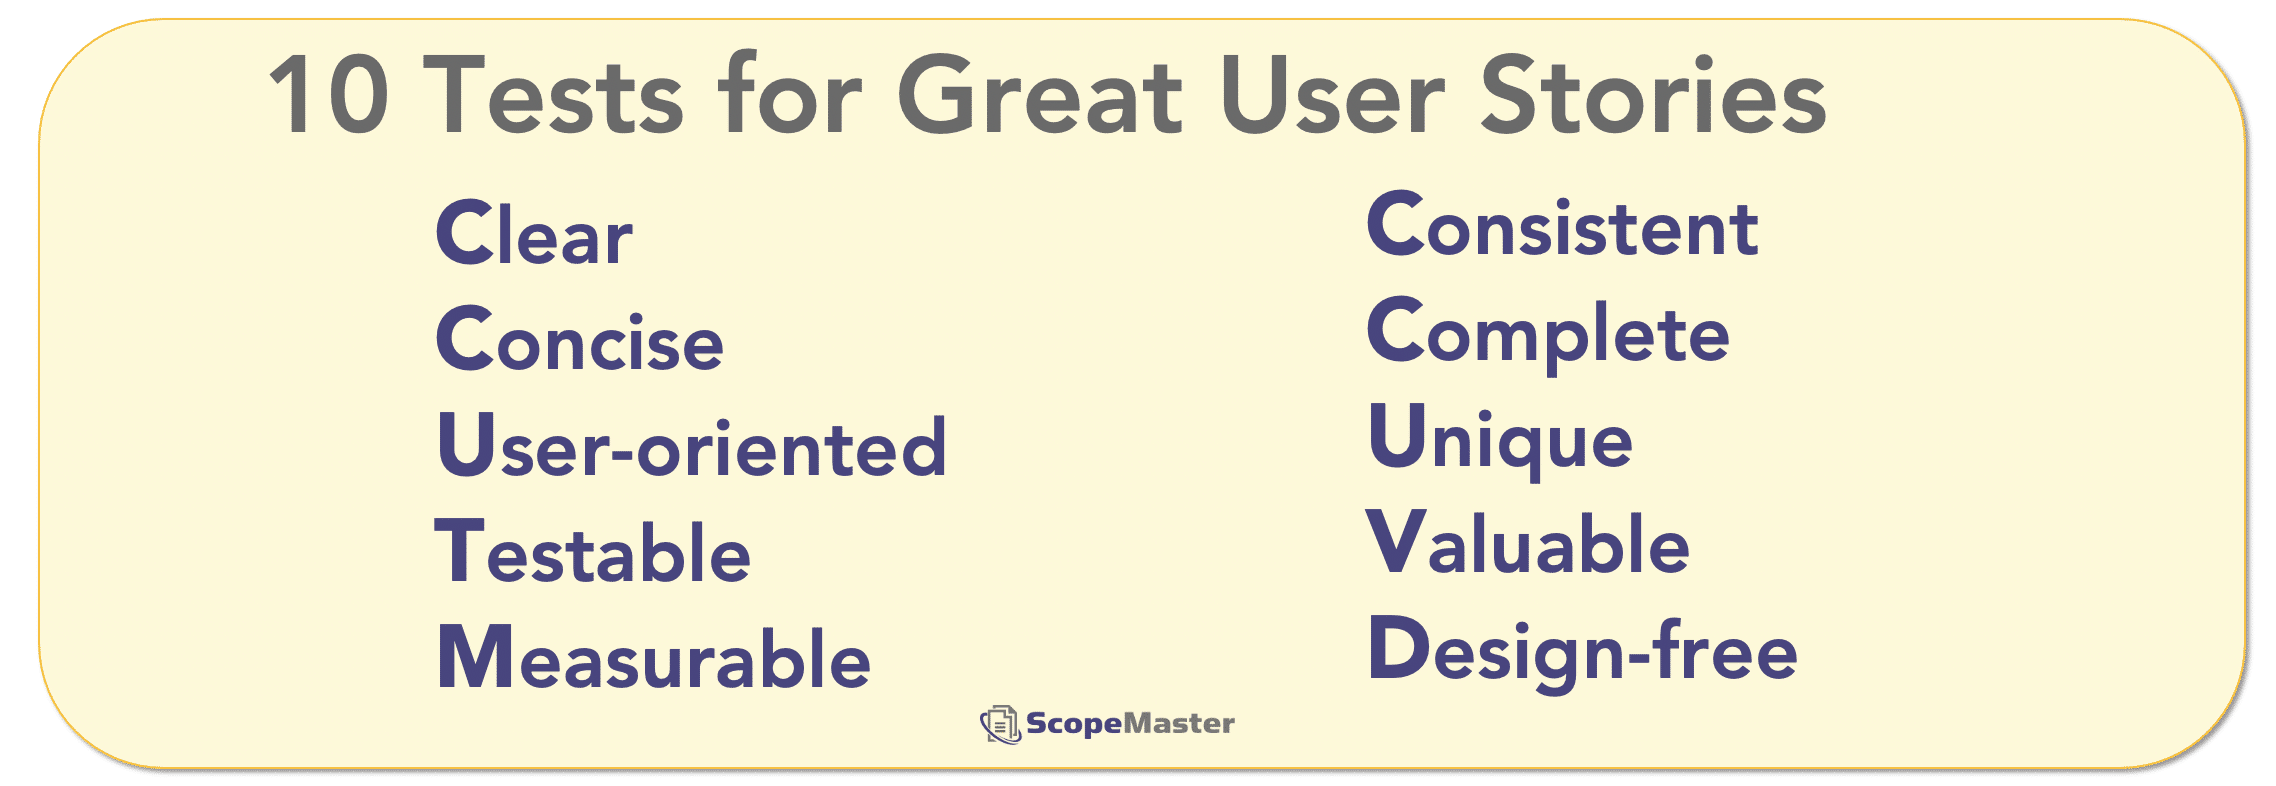 ScopeMaster-ten-tests-for-great-user-stories